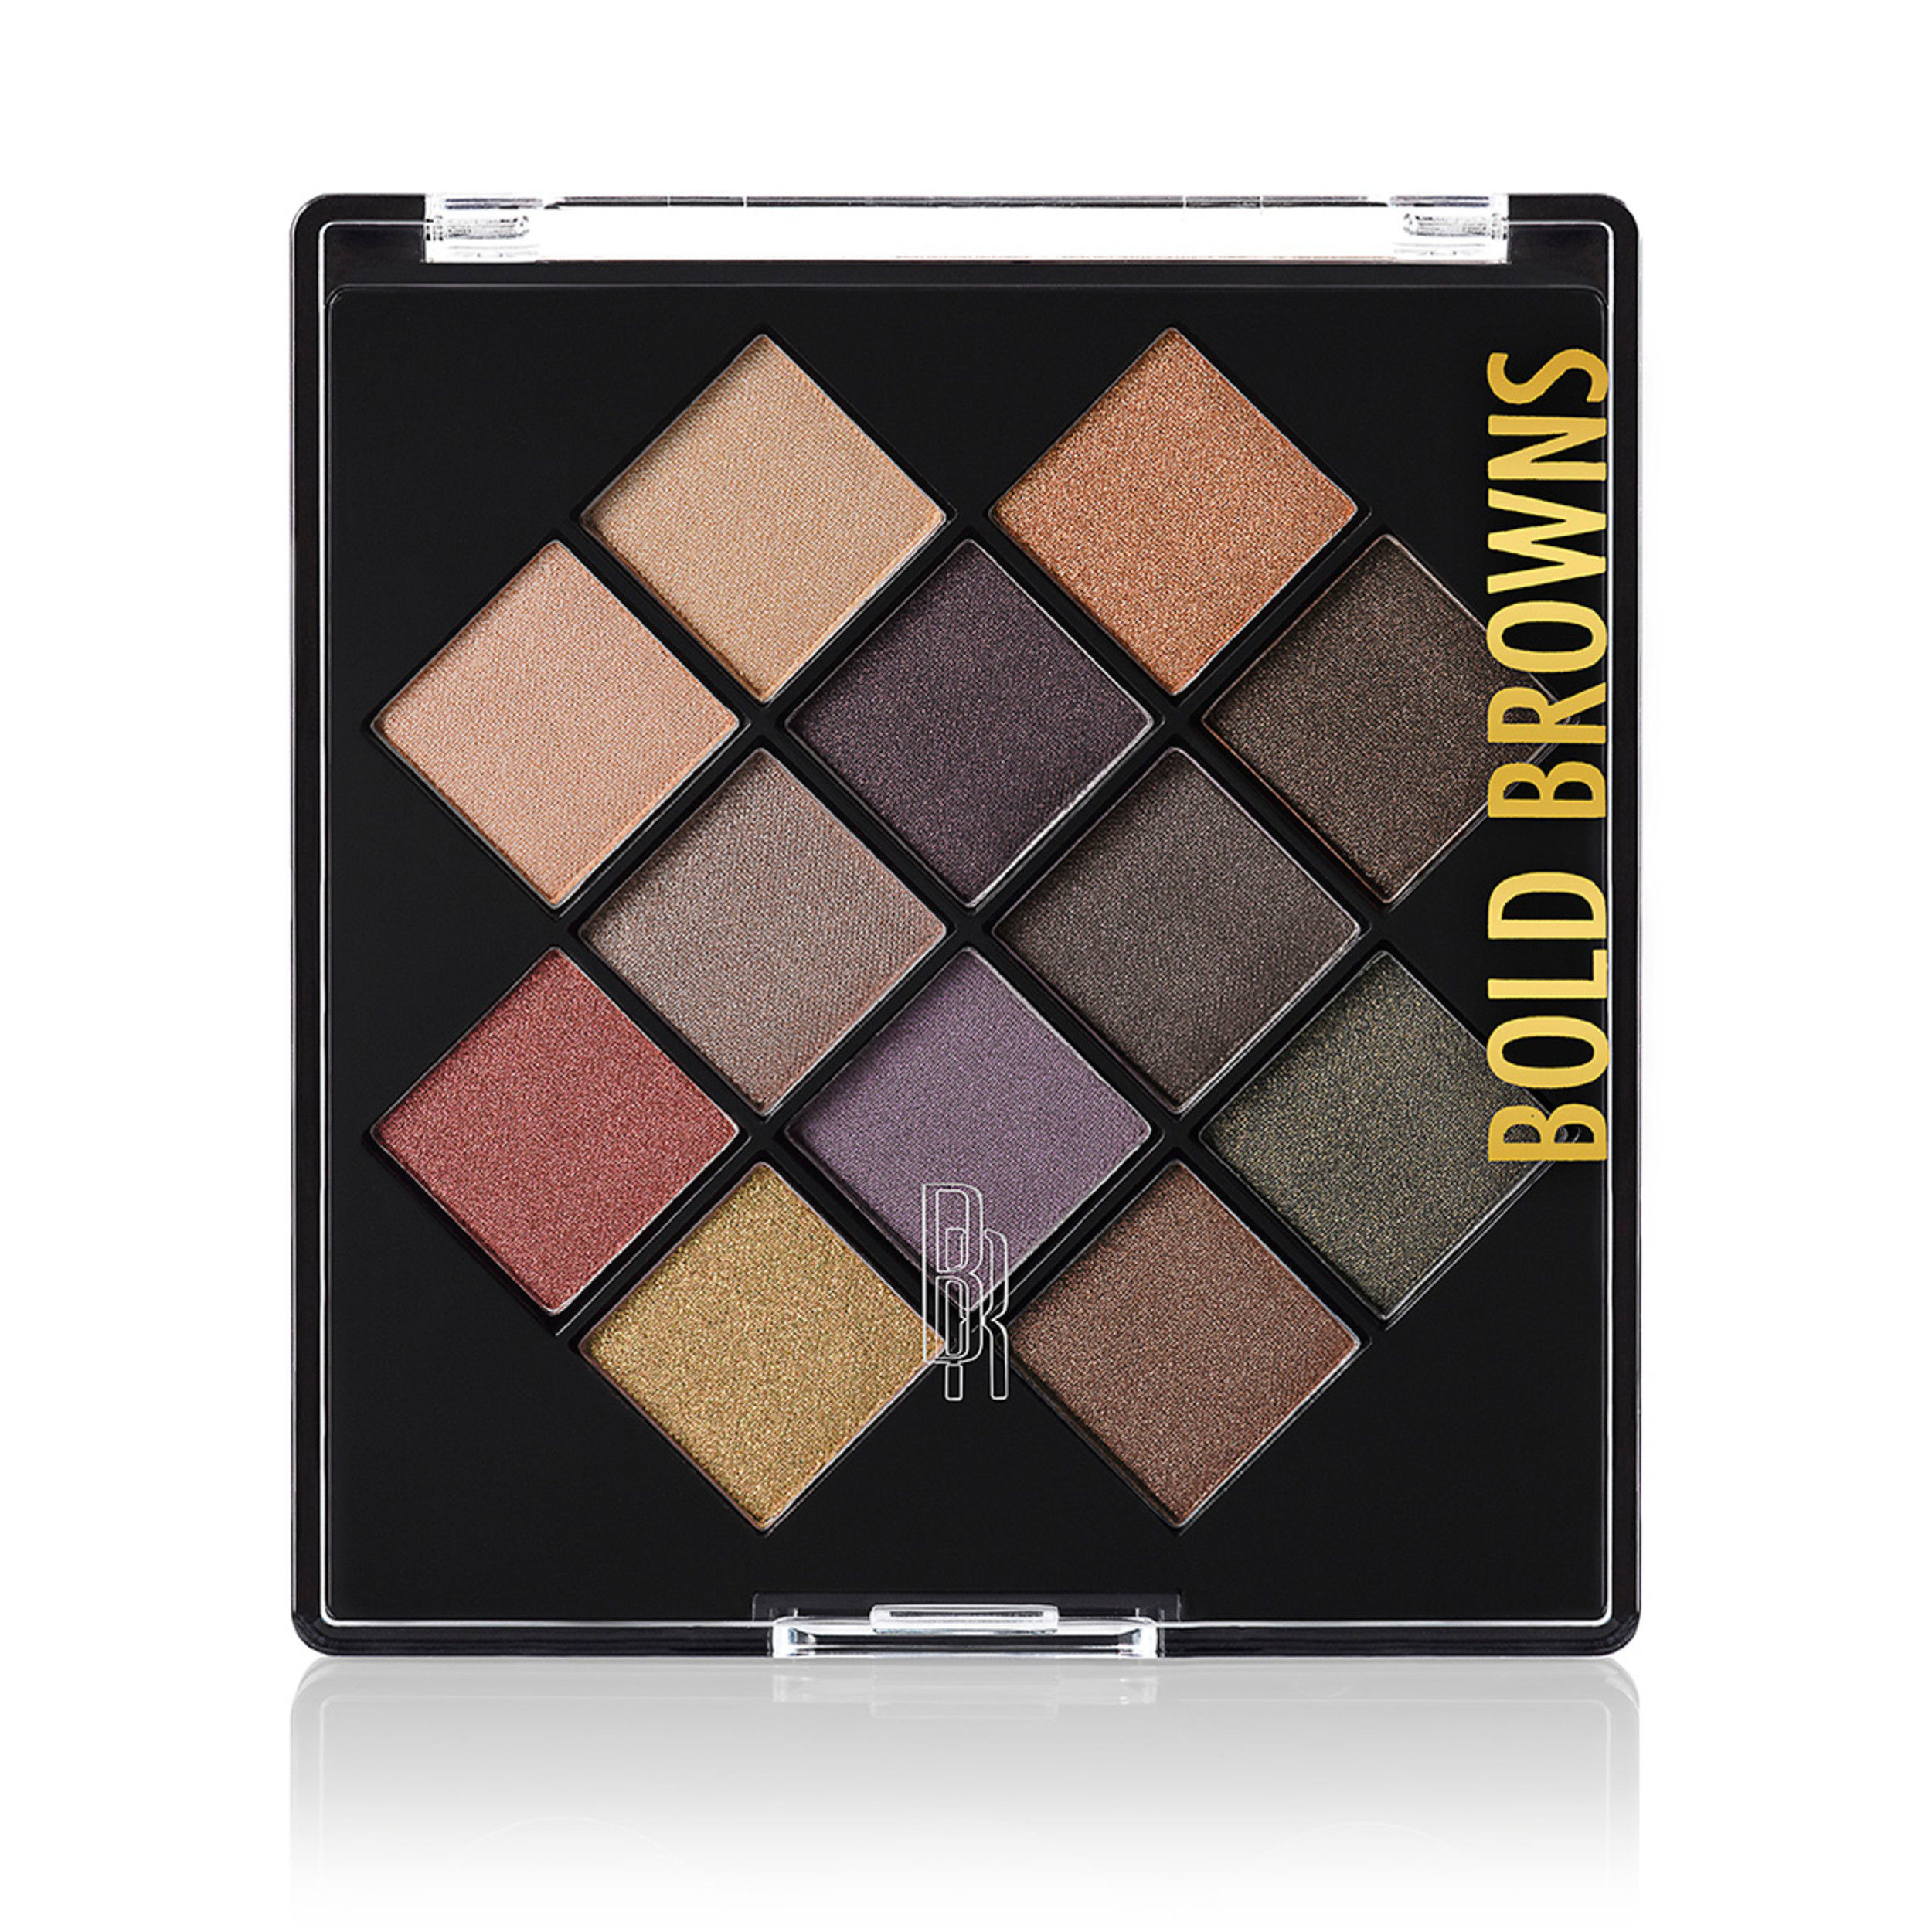 Black Radiance Eye Appeal™ Shadow Palette, Bold Browns